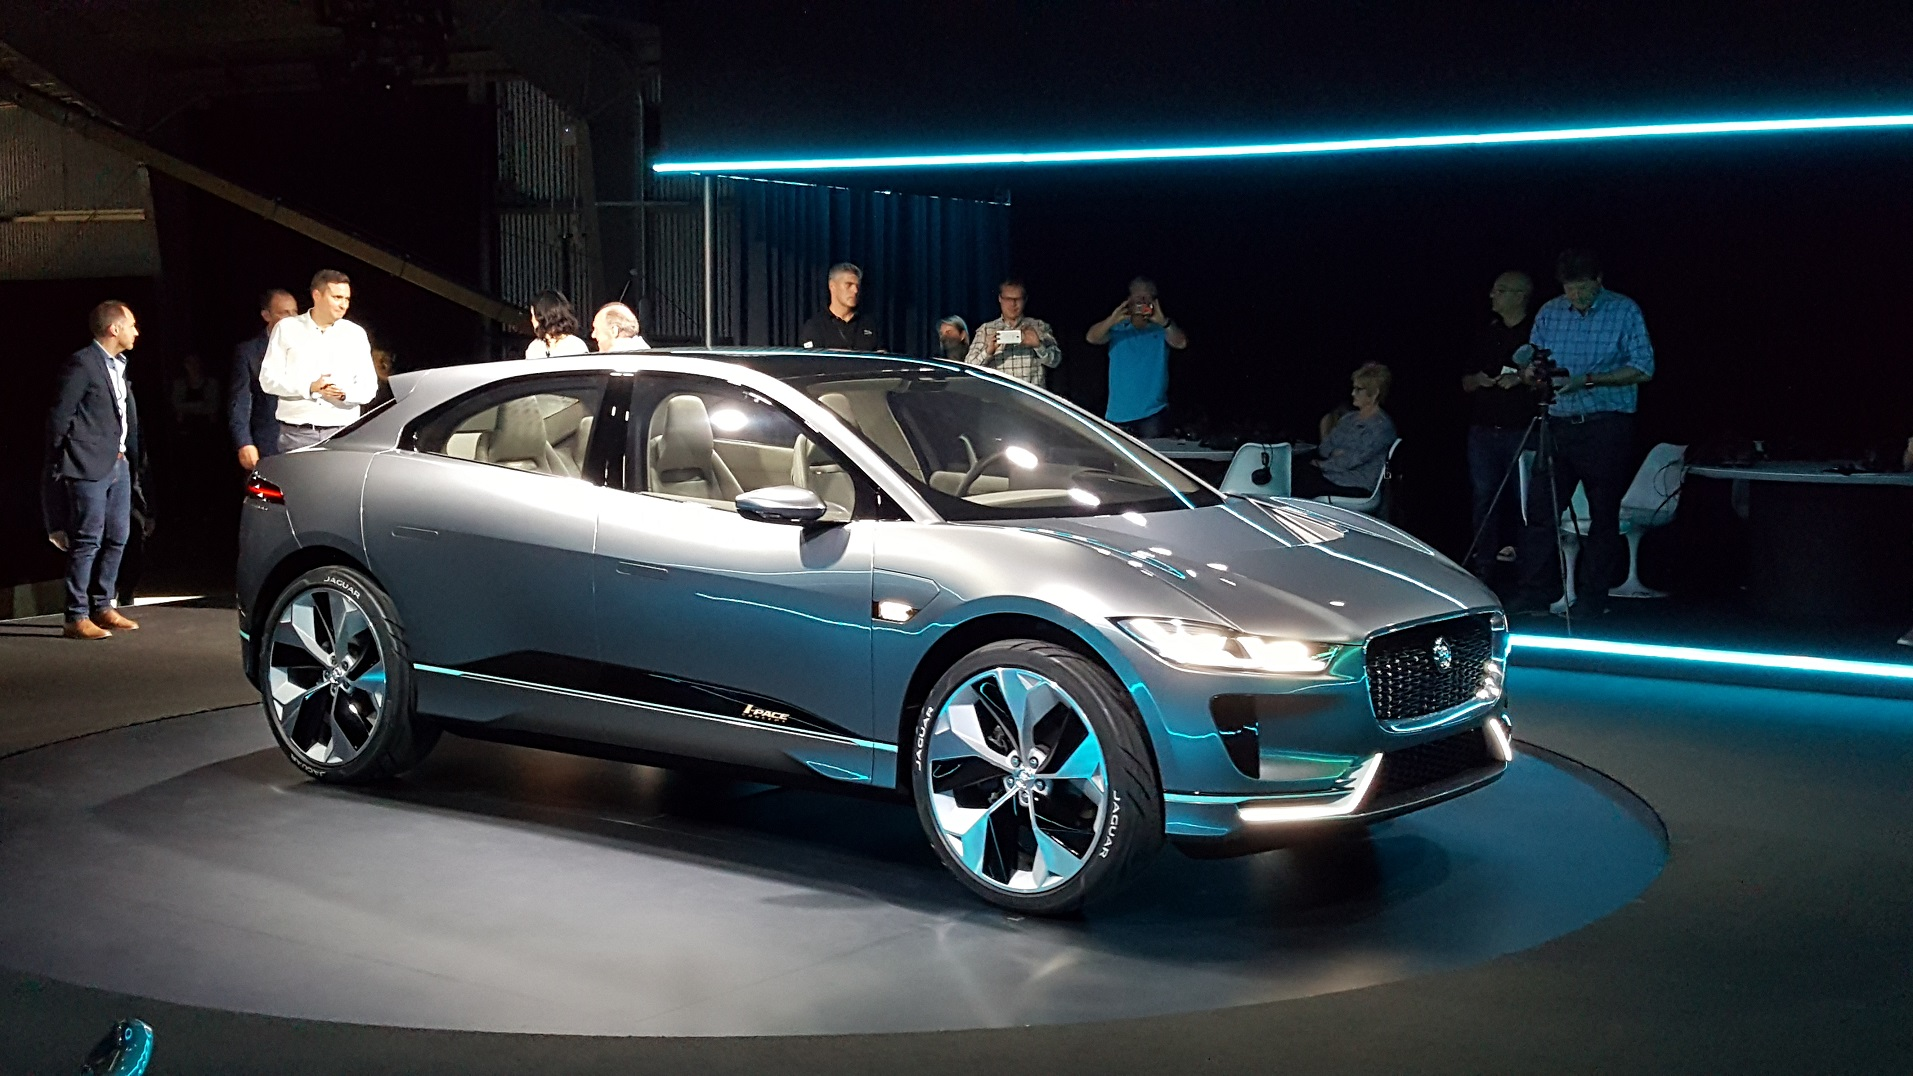 First Euro Prices For Jaguar I Pace Electric Car Released Us 70k To 80k